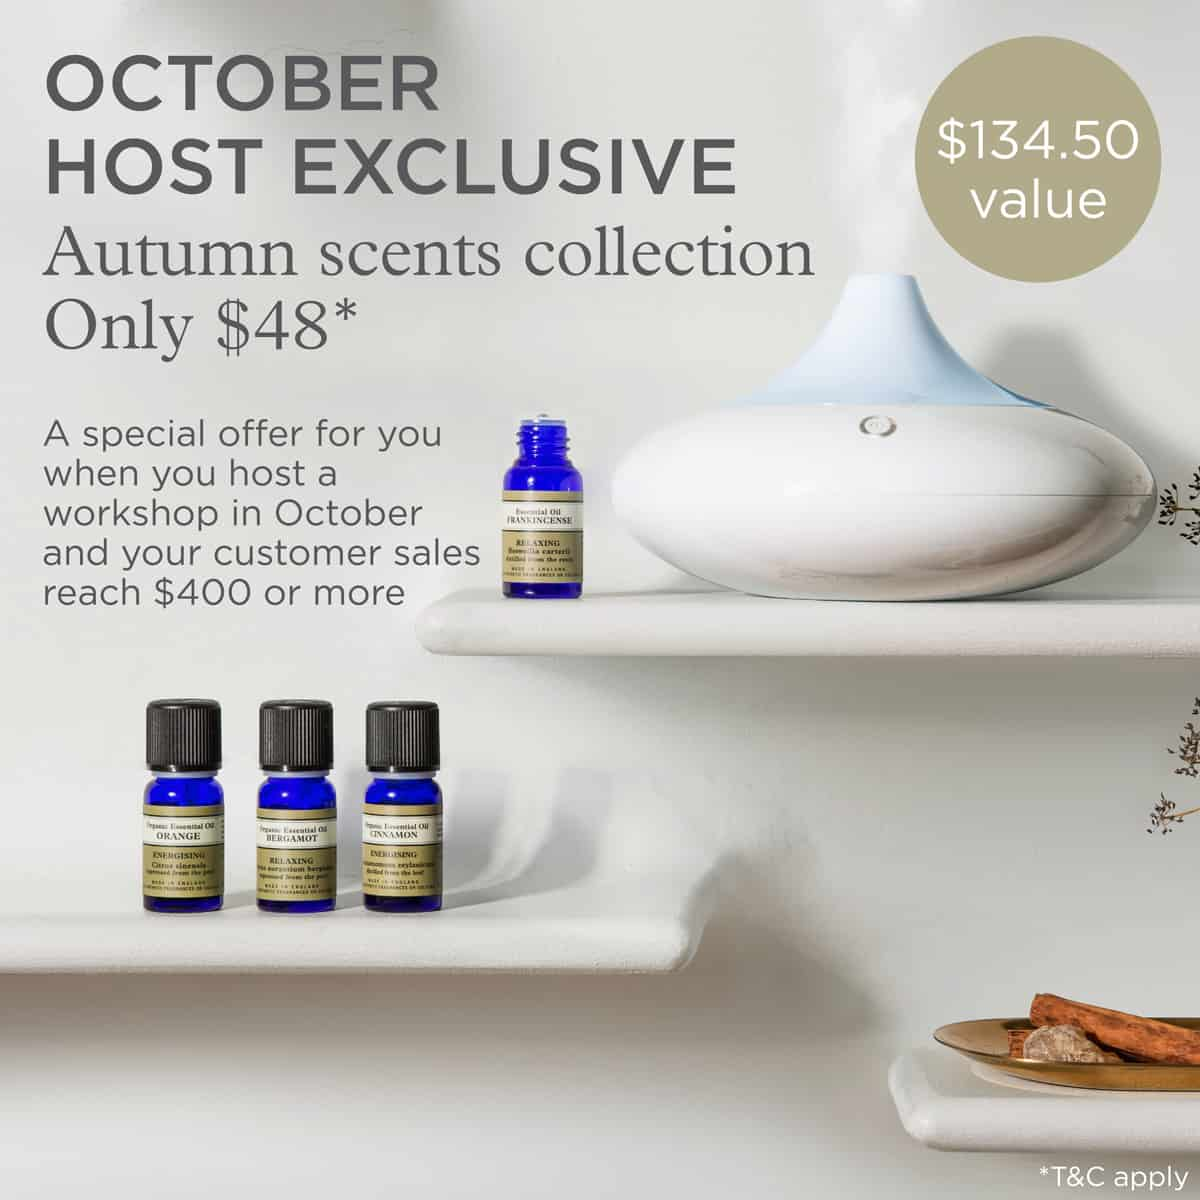 NYR Organic October Specials - This host exclusive is awesome! Organic essential oils and a diffuser at 65% off!